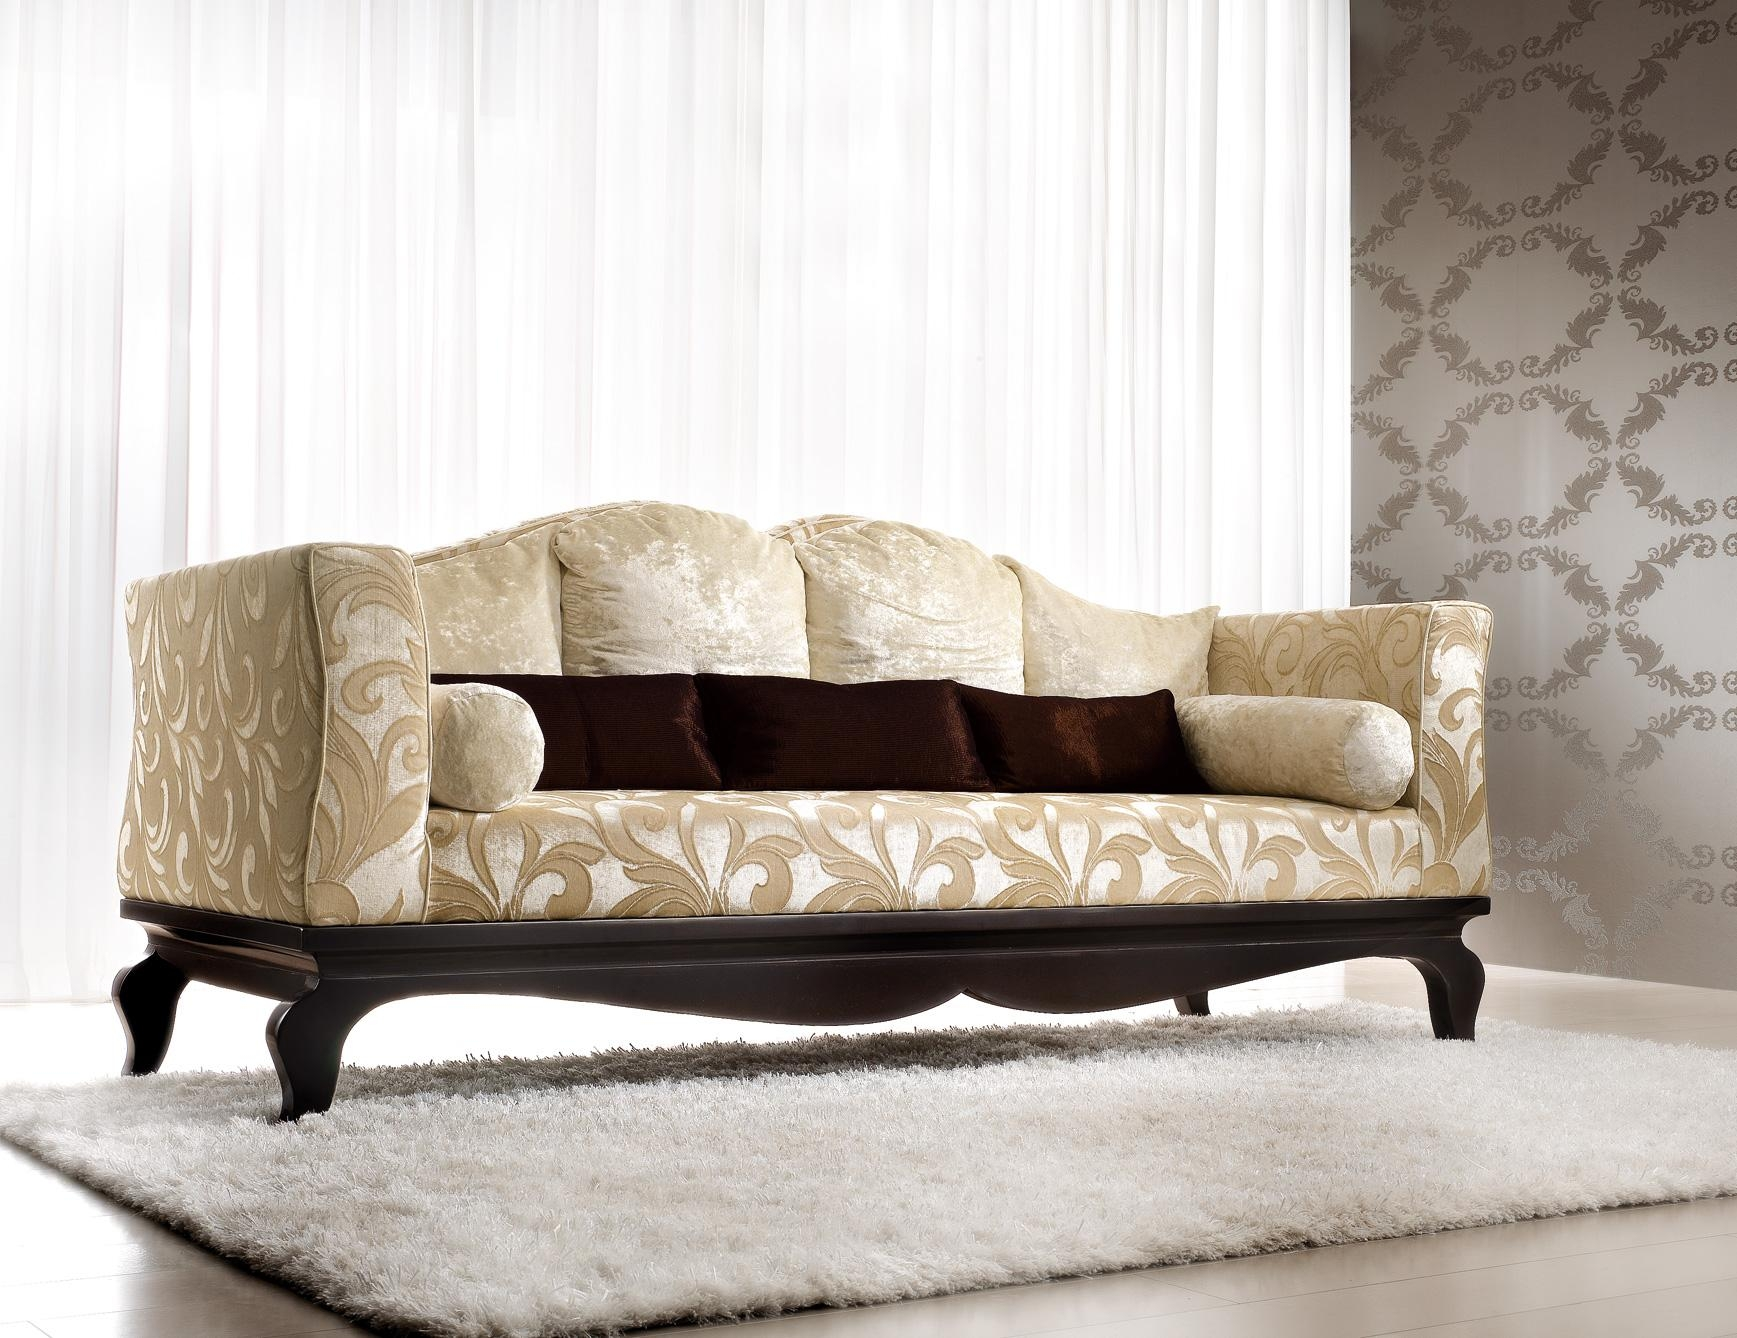 Italian Sofa Chairs 20 Photos Floral Sofas And Chairs Sofa Ideas